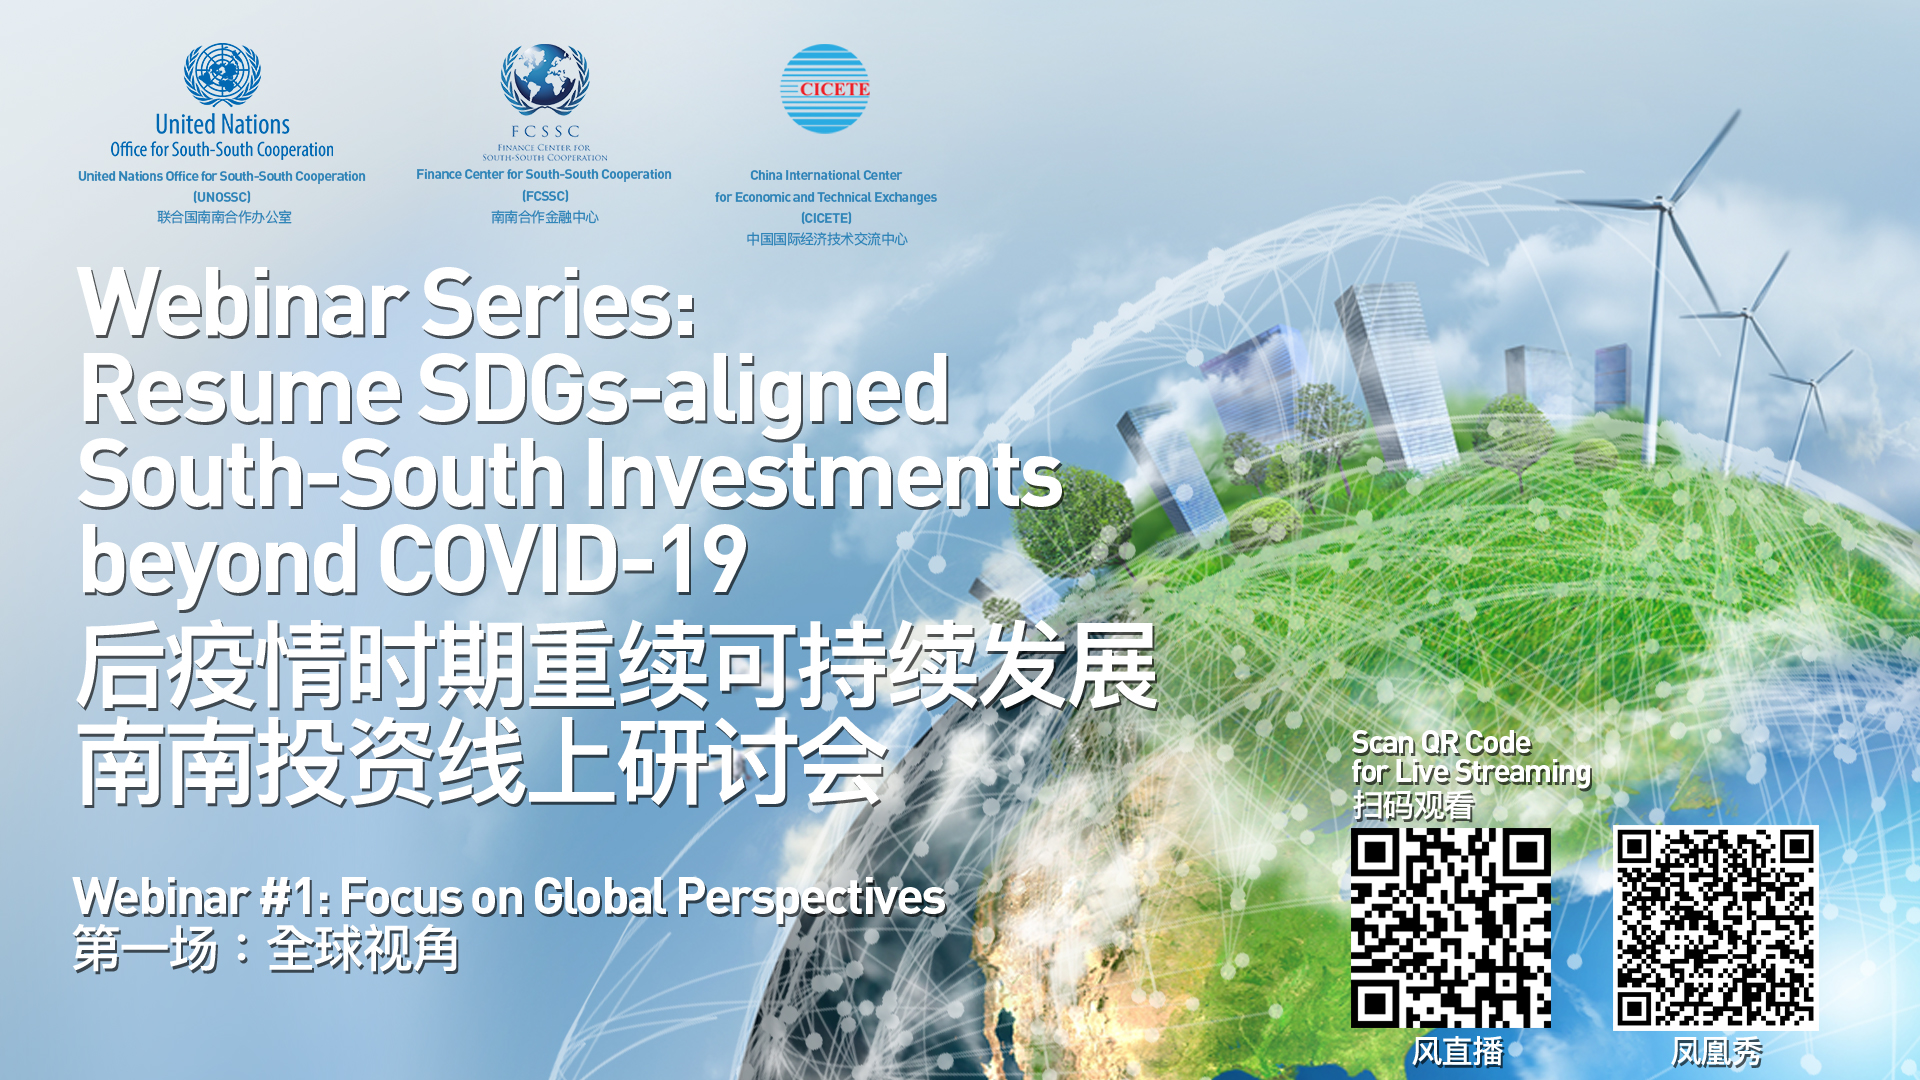 Webinar Series:  Resume SDG-aligned South-South Investments Beyond COVID-19